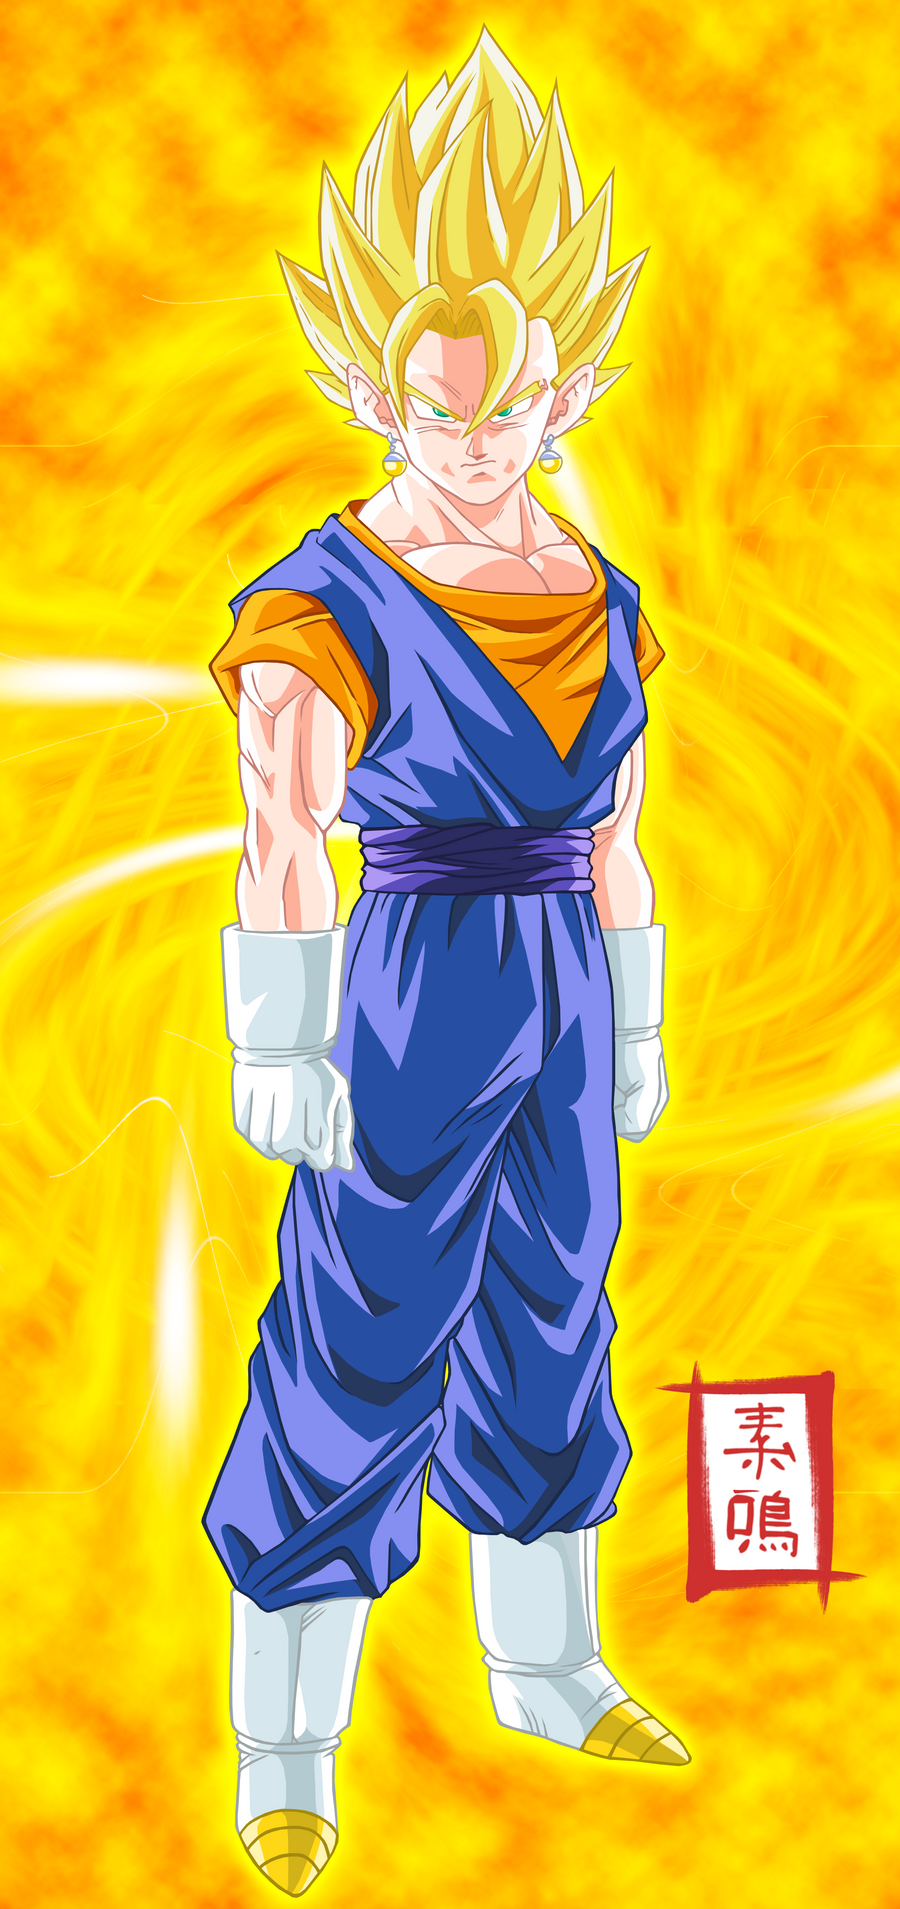 Imagenes copadas de dragon ball im genes taringa for Chambre dragon ball z